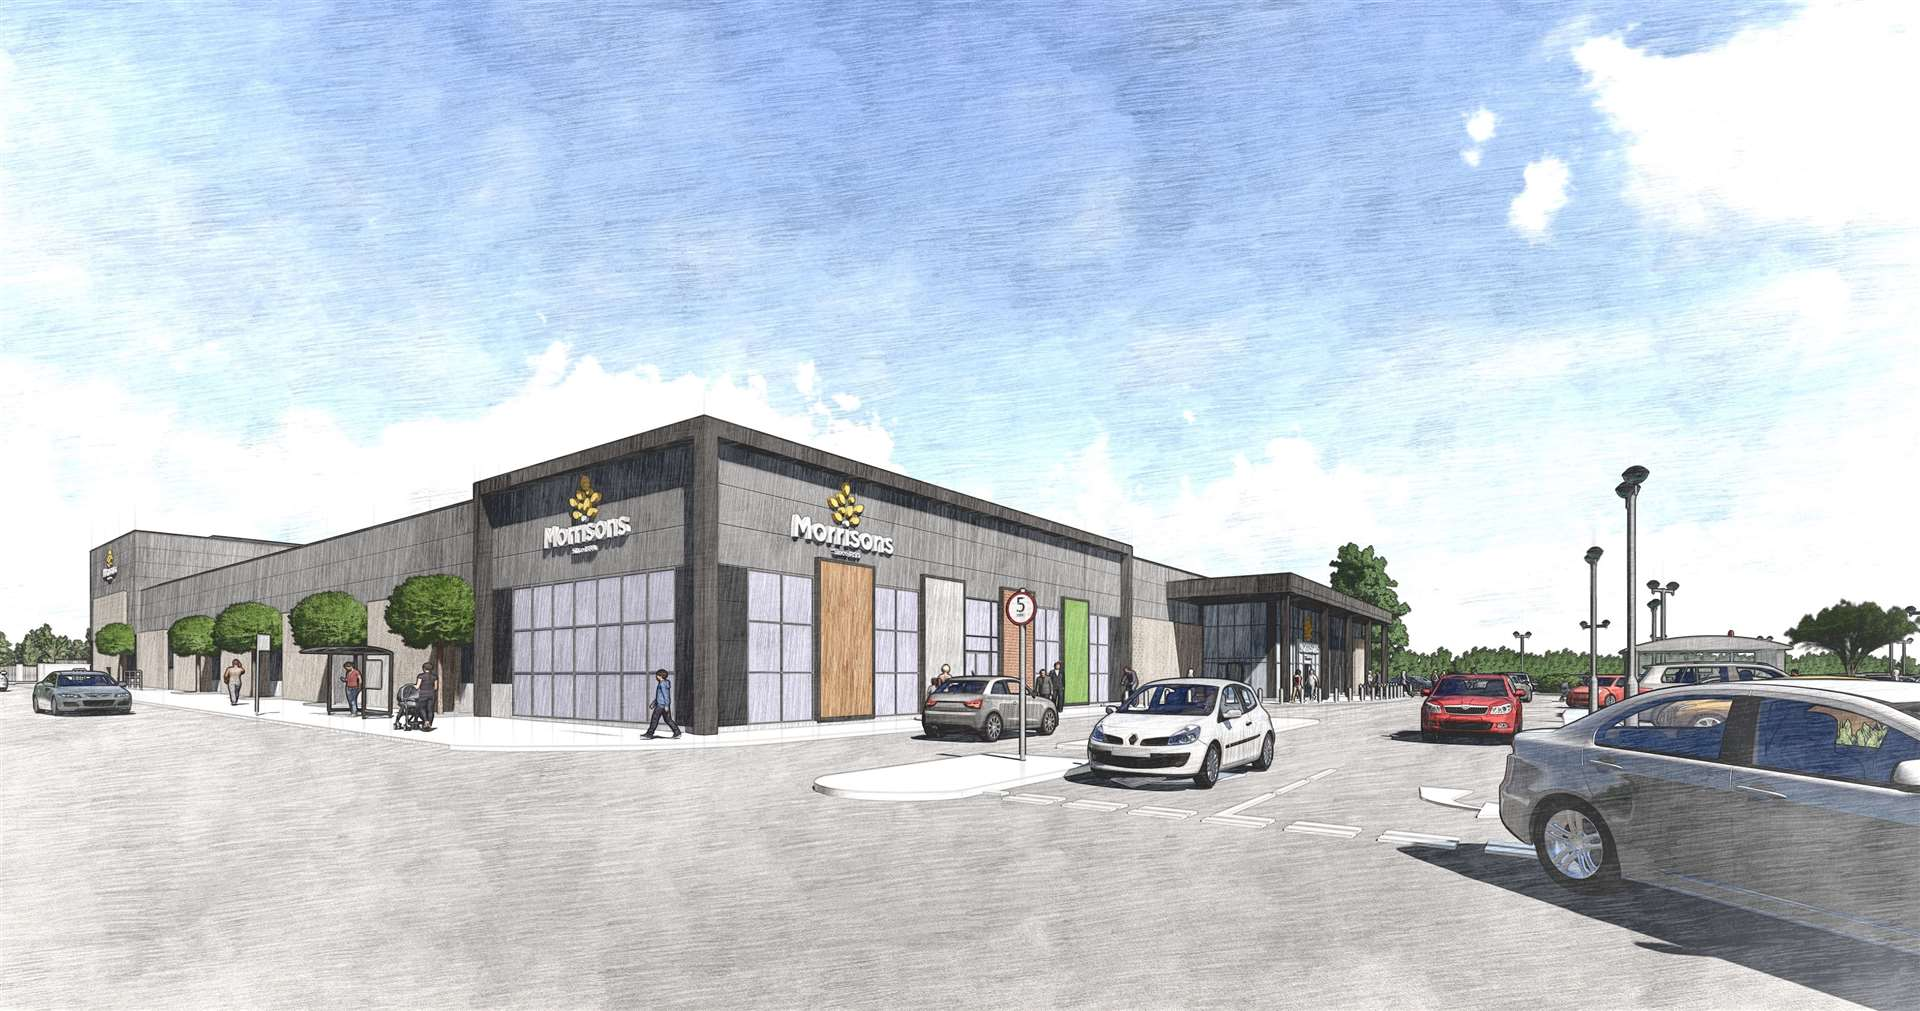 Artist impressions of the new store in Folkestone were released earlier this year